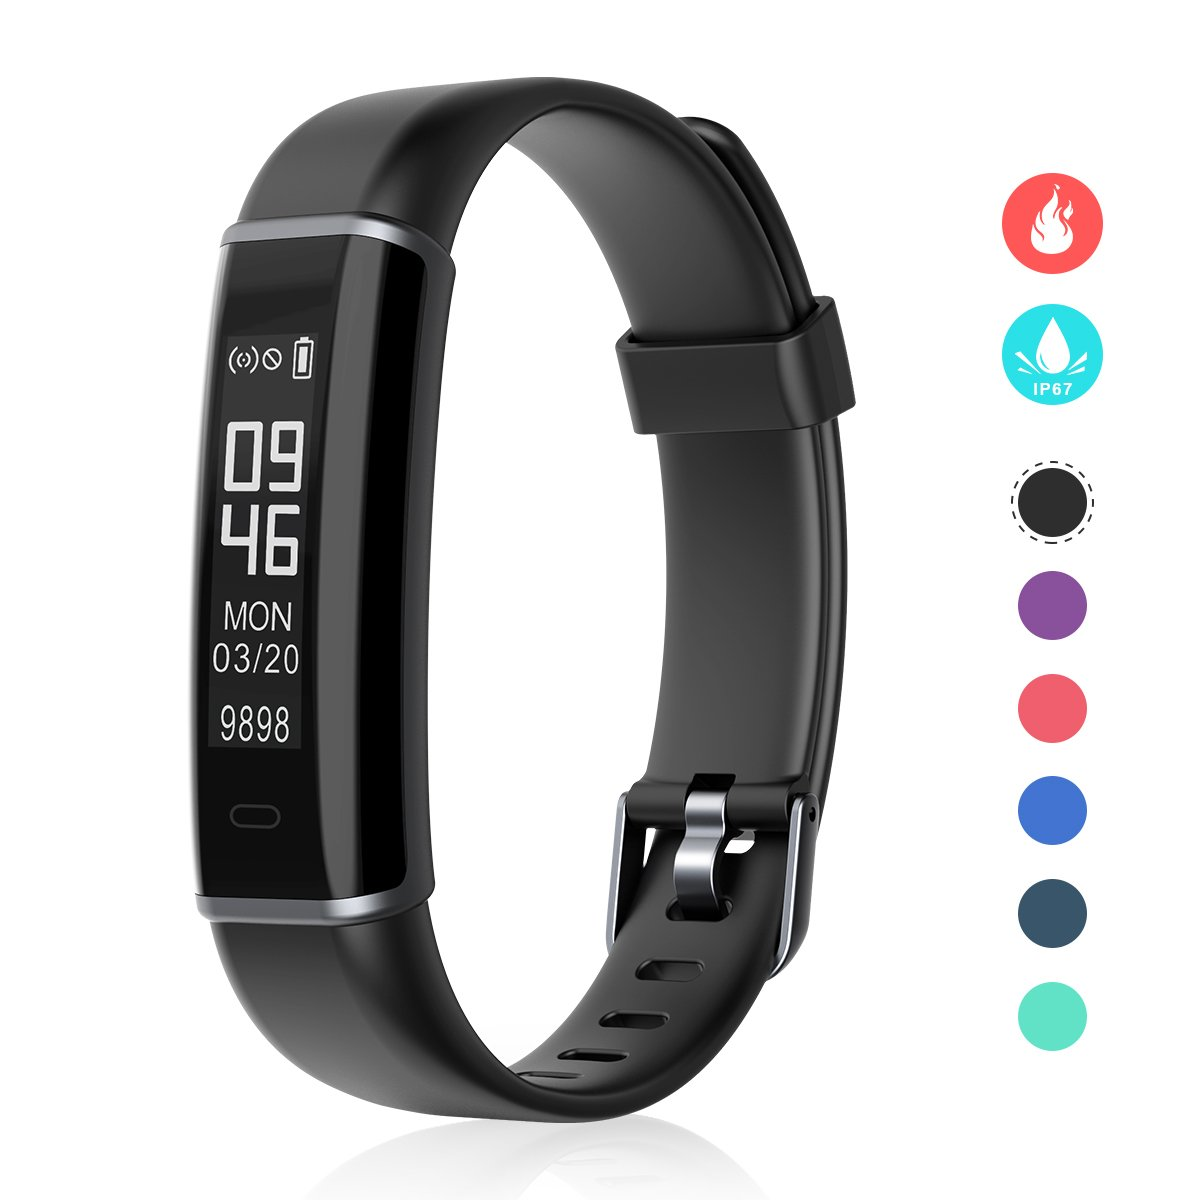 Fitness Tracker, EFOSHM Smart Fitness Activity Tracker Step Counter Calorie Counter Watch Pedometer, Slim Wearable Water Resistant Sleep Monitor Wristband Android/iOS